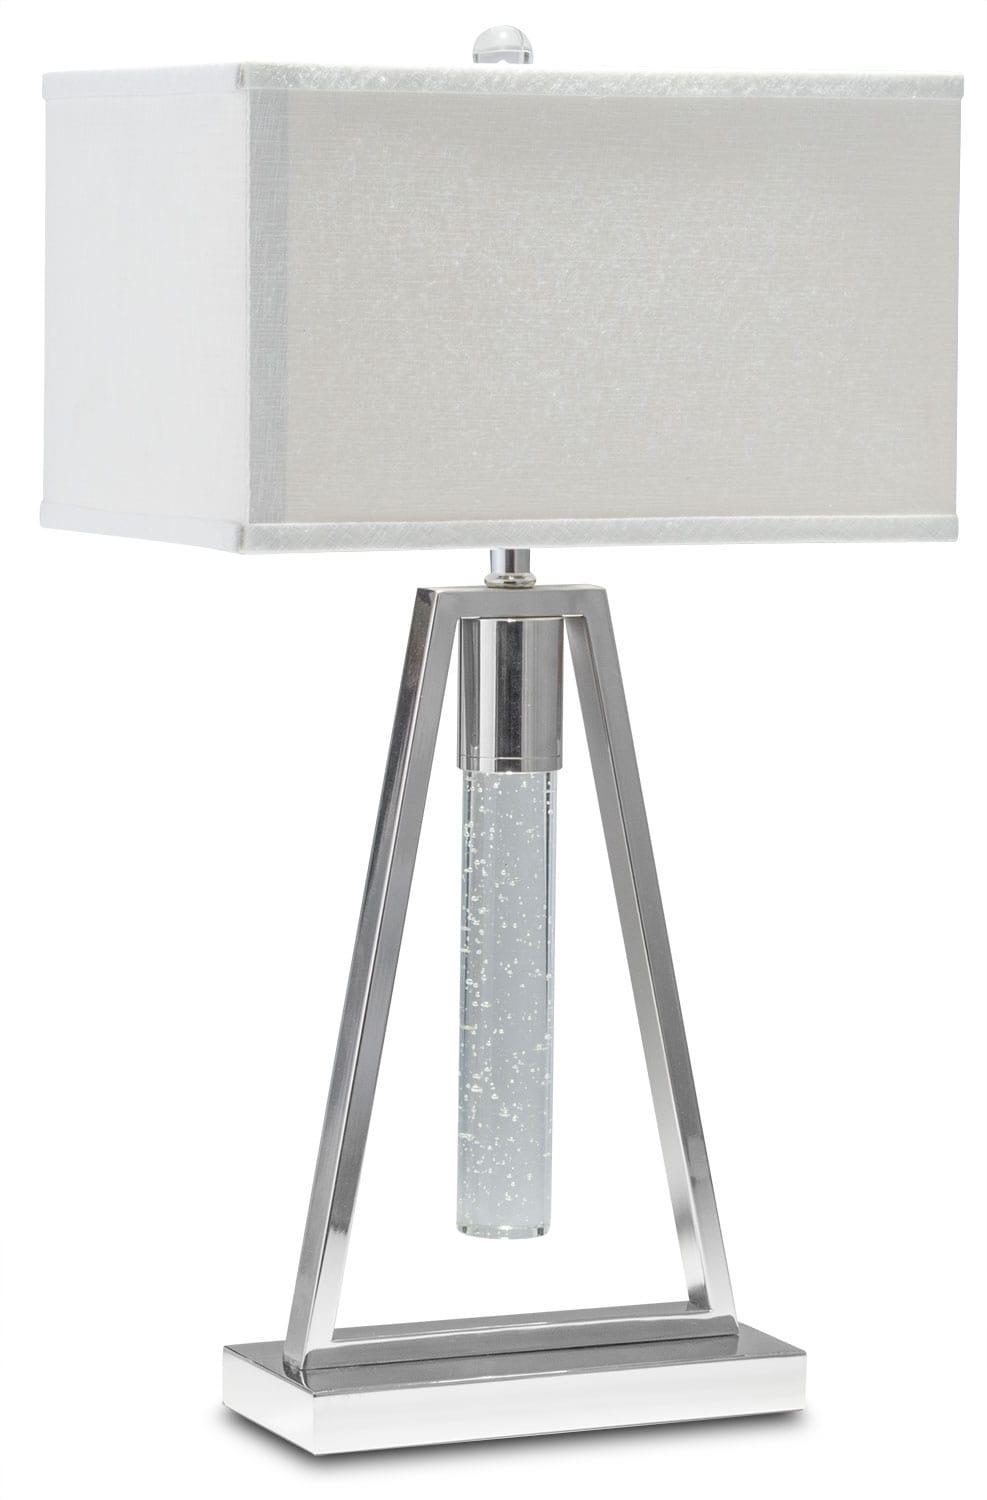 Ice Table Lamp - Nickel